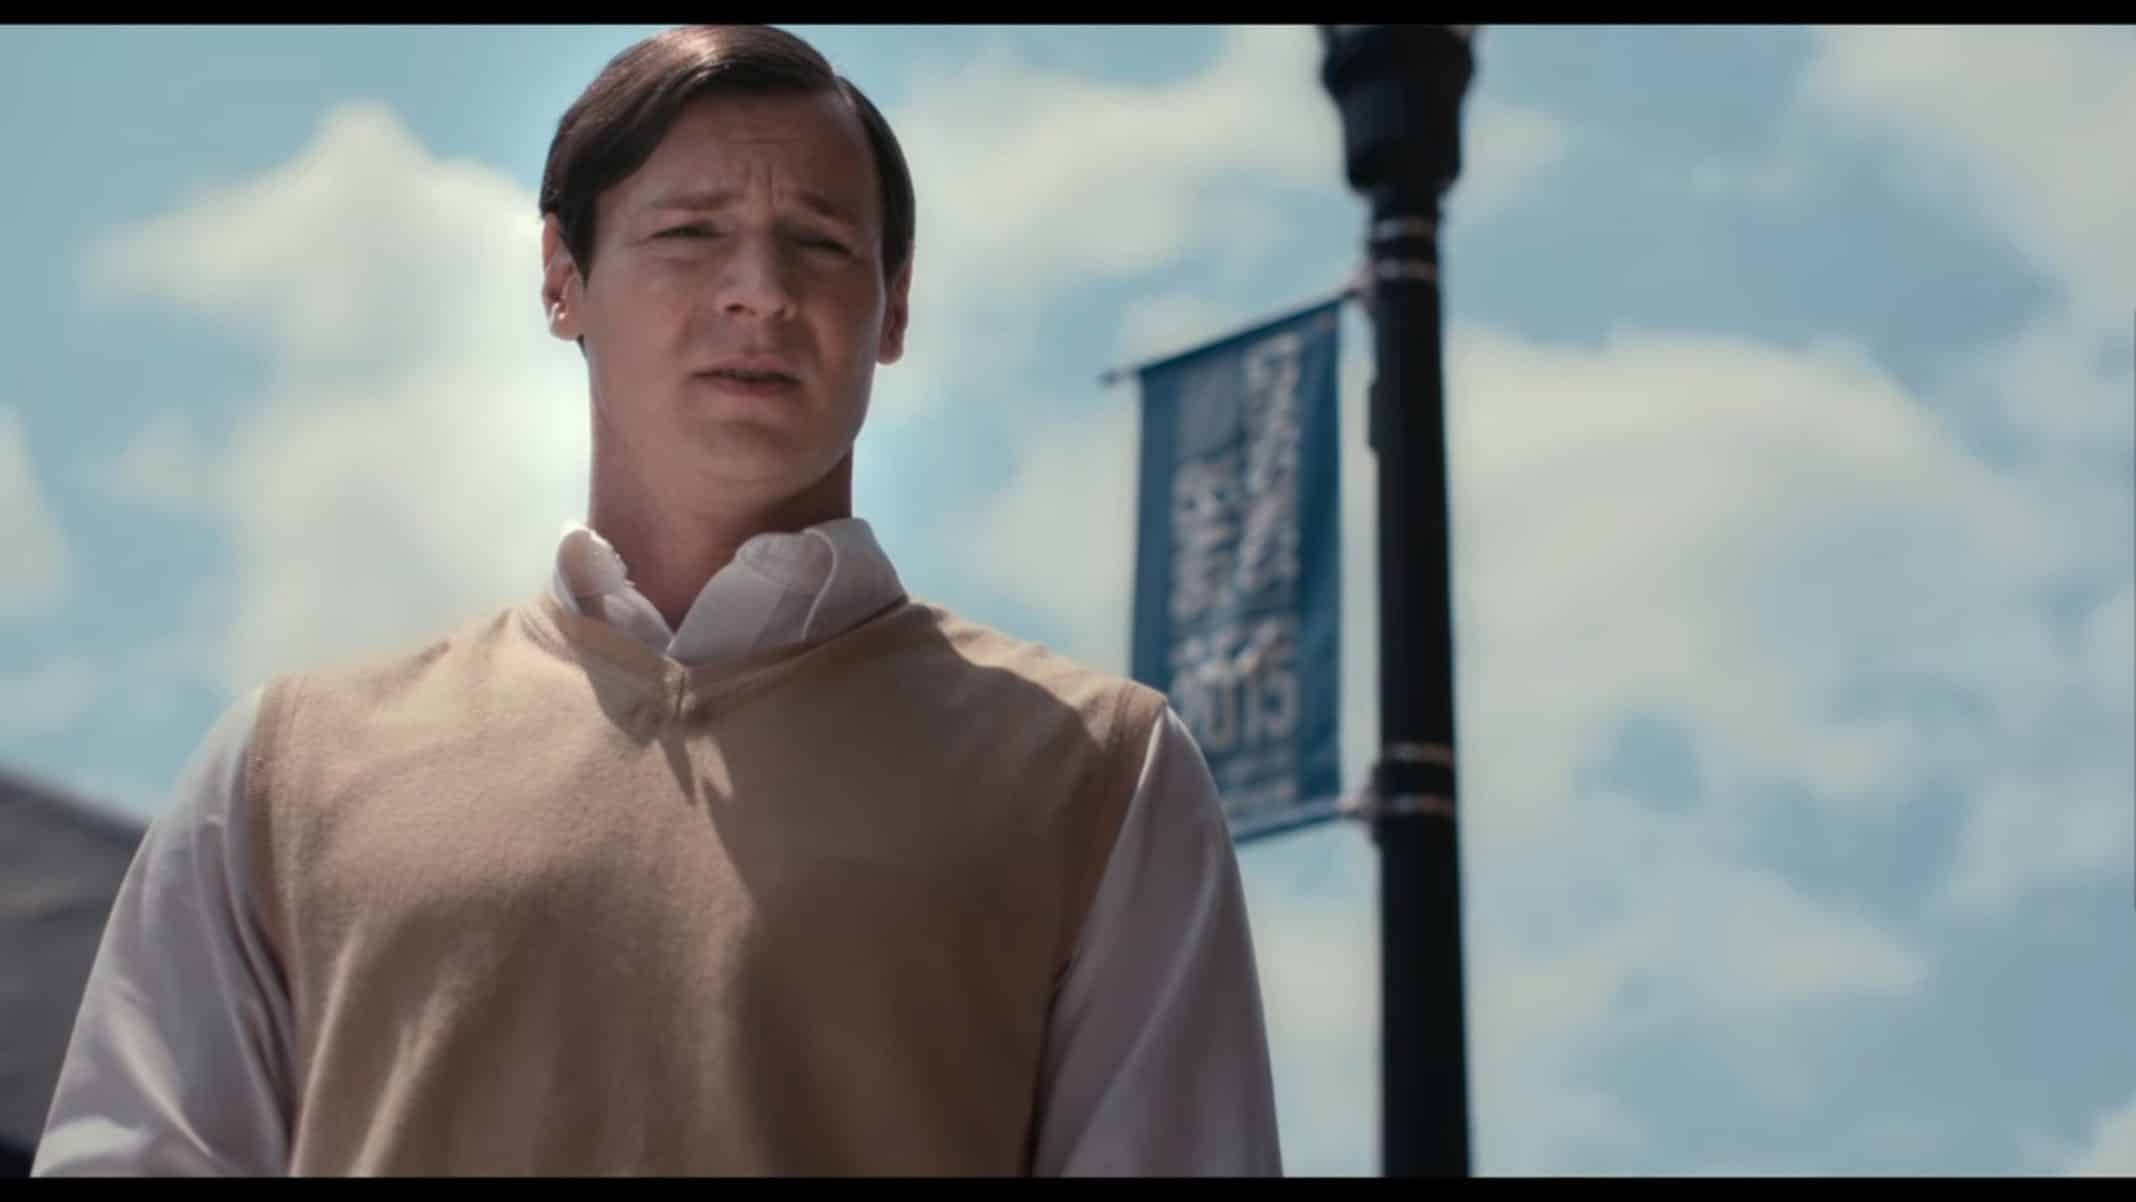 Farmer (Benjamin Walker) talking to Russell.